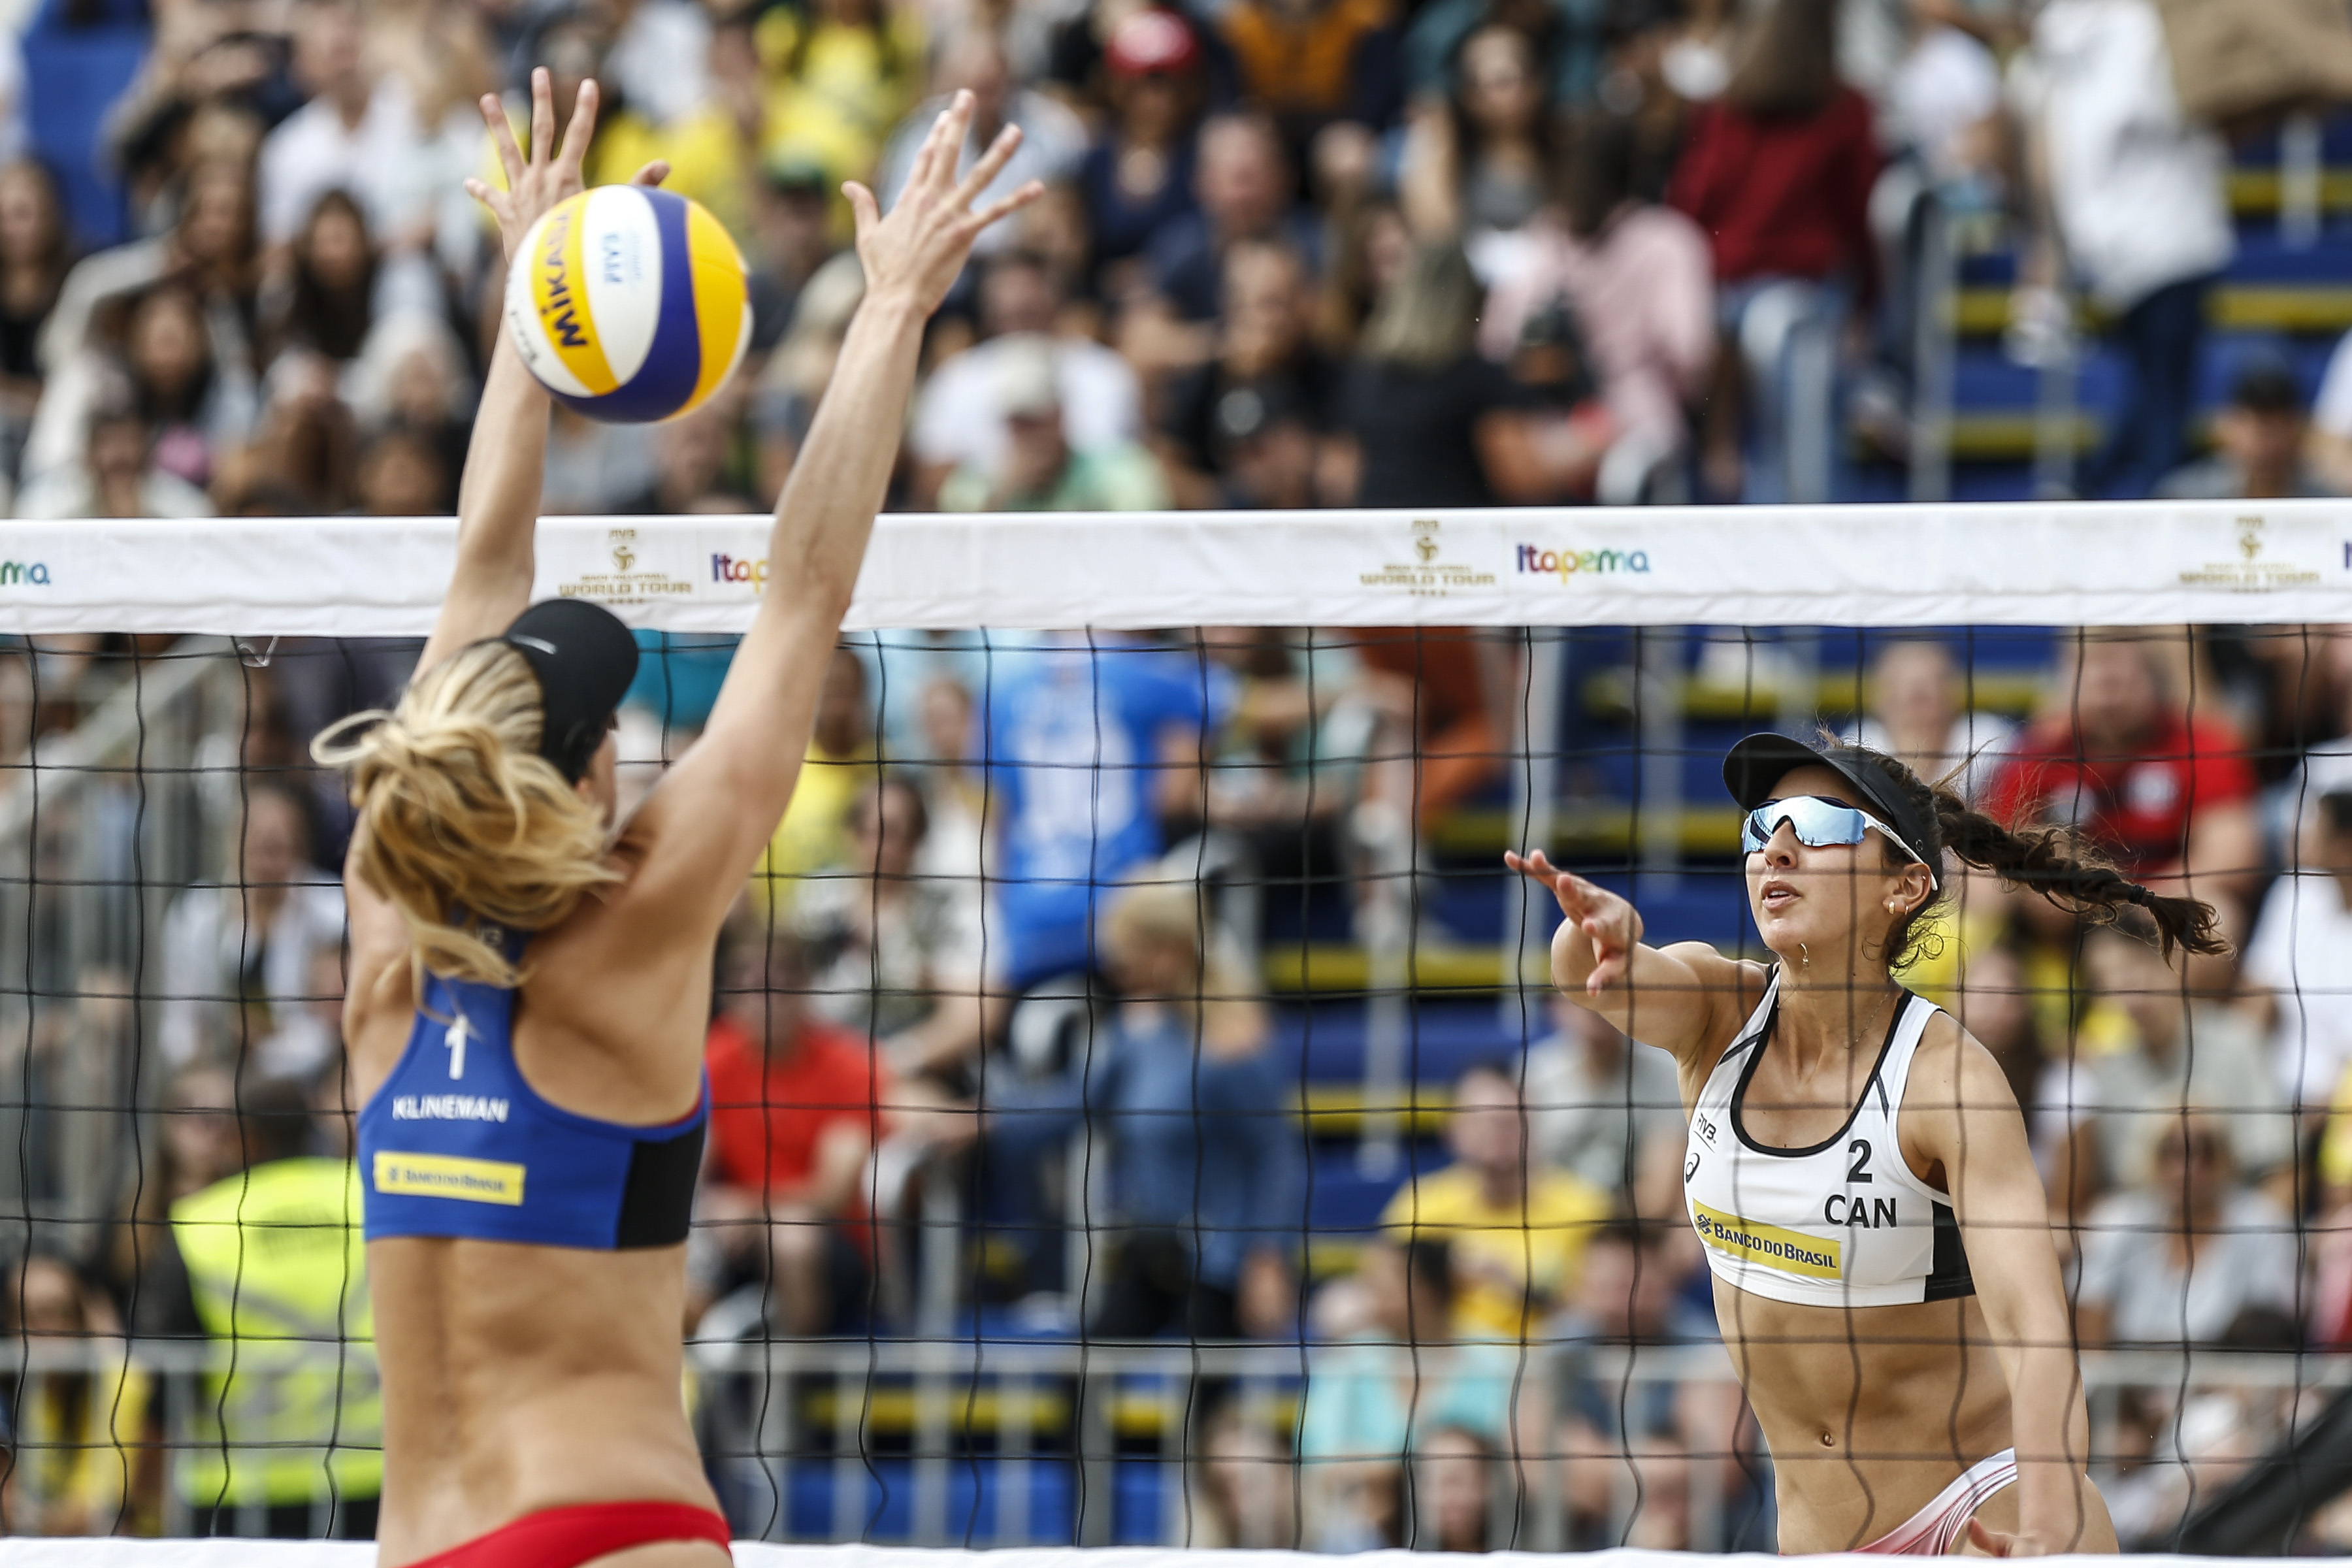 News 2019 2020 Fivb Beach Volleyball World Tour Calendar Announced For Olympic Season